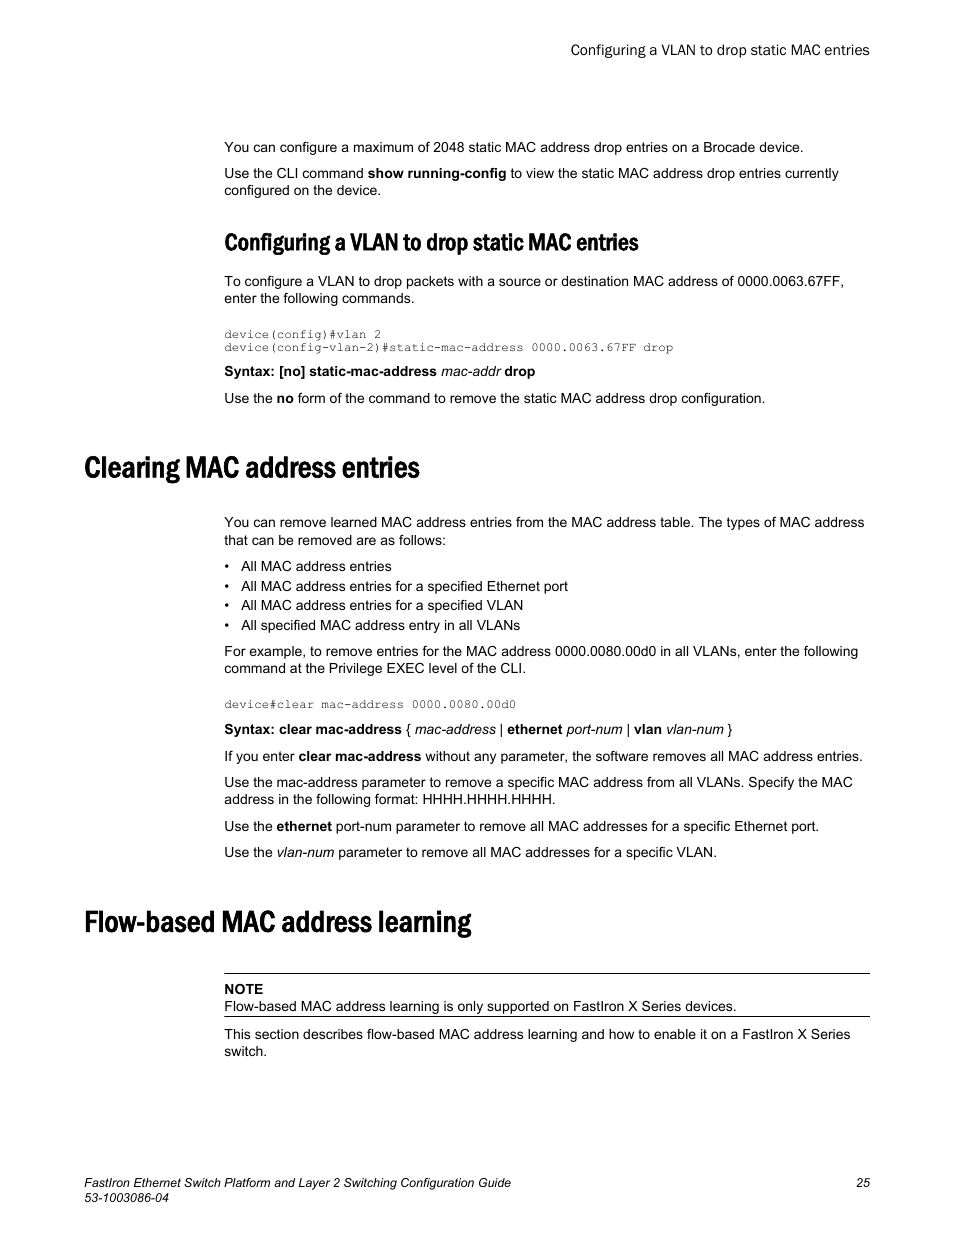 Configuring a vlan to drop static mac entries, Clearing mac